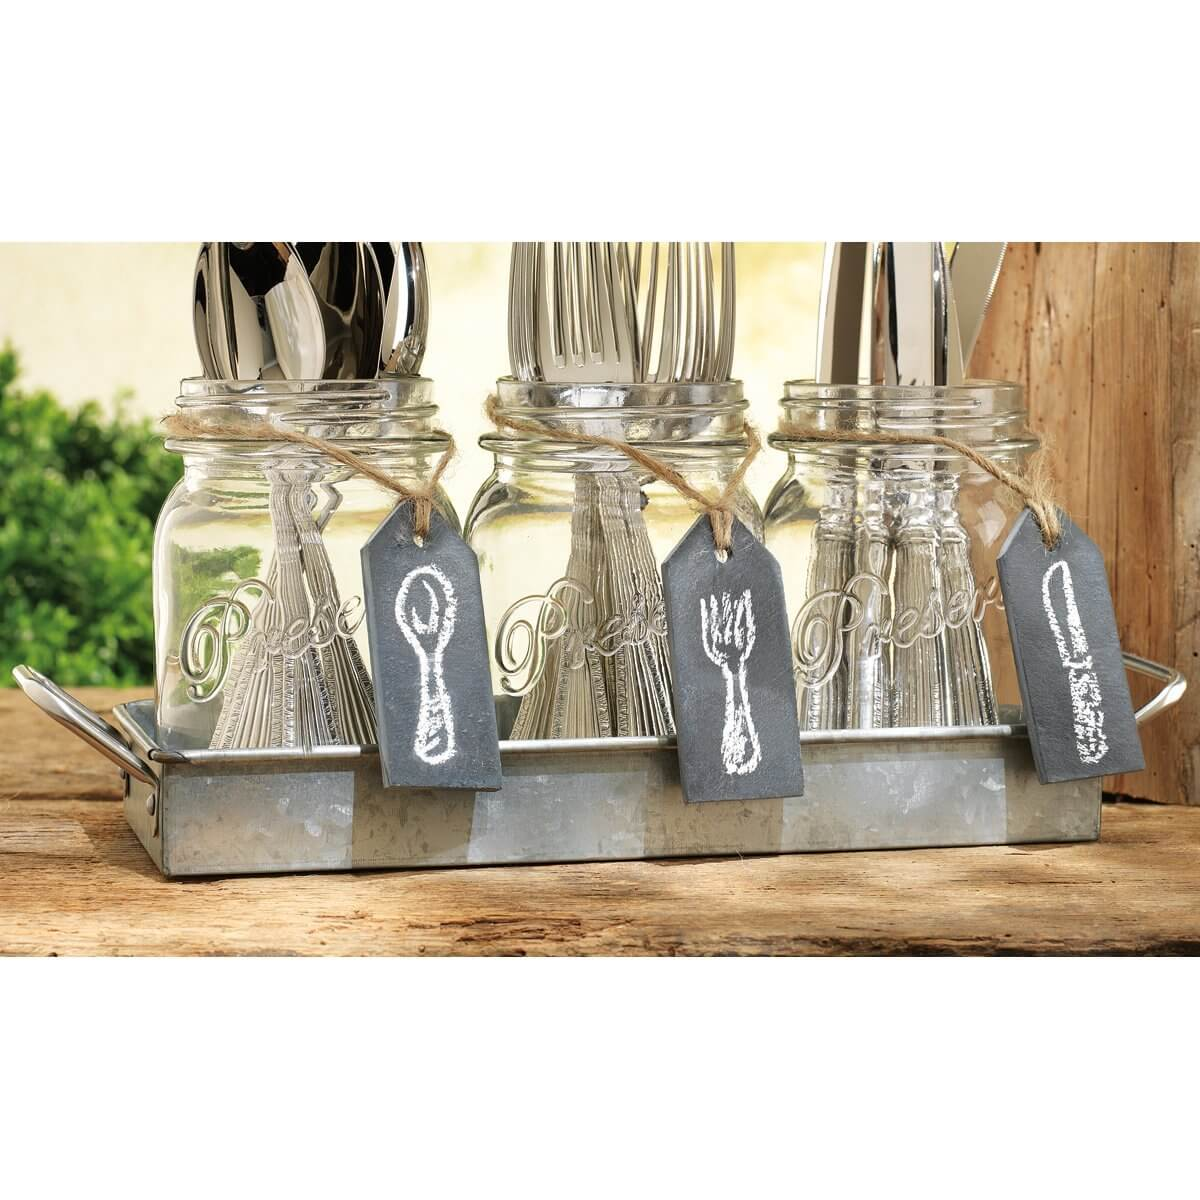 If you're looking for a neat way to store your silverware, a small tray with mason jars will keep your utensils organized and within easy reach.